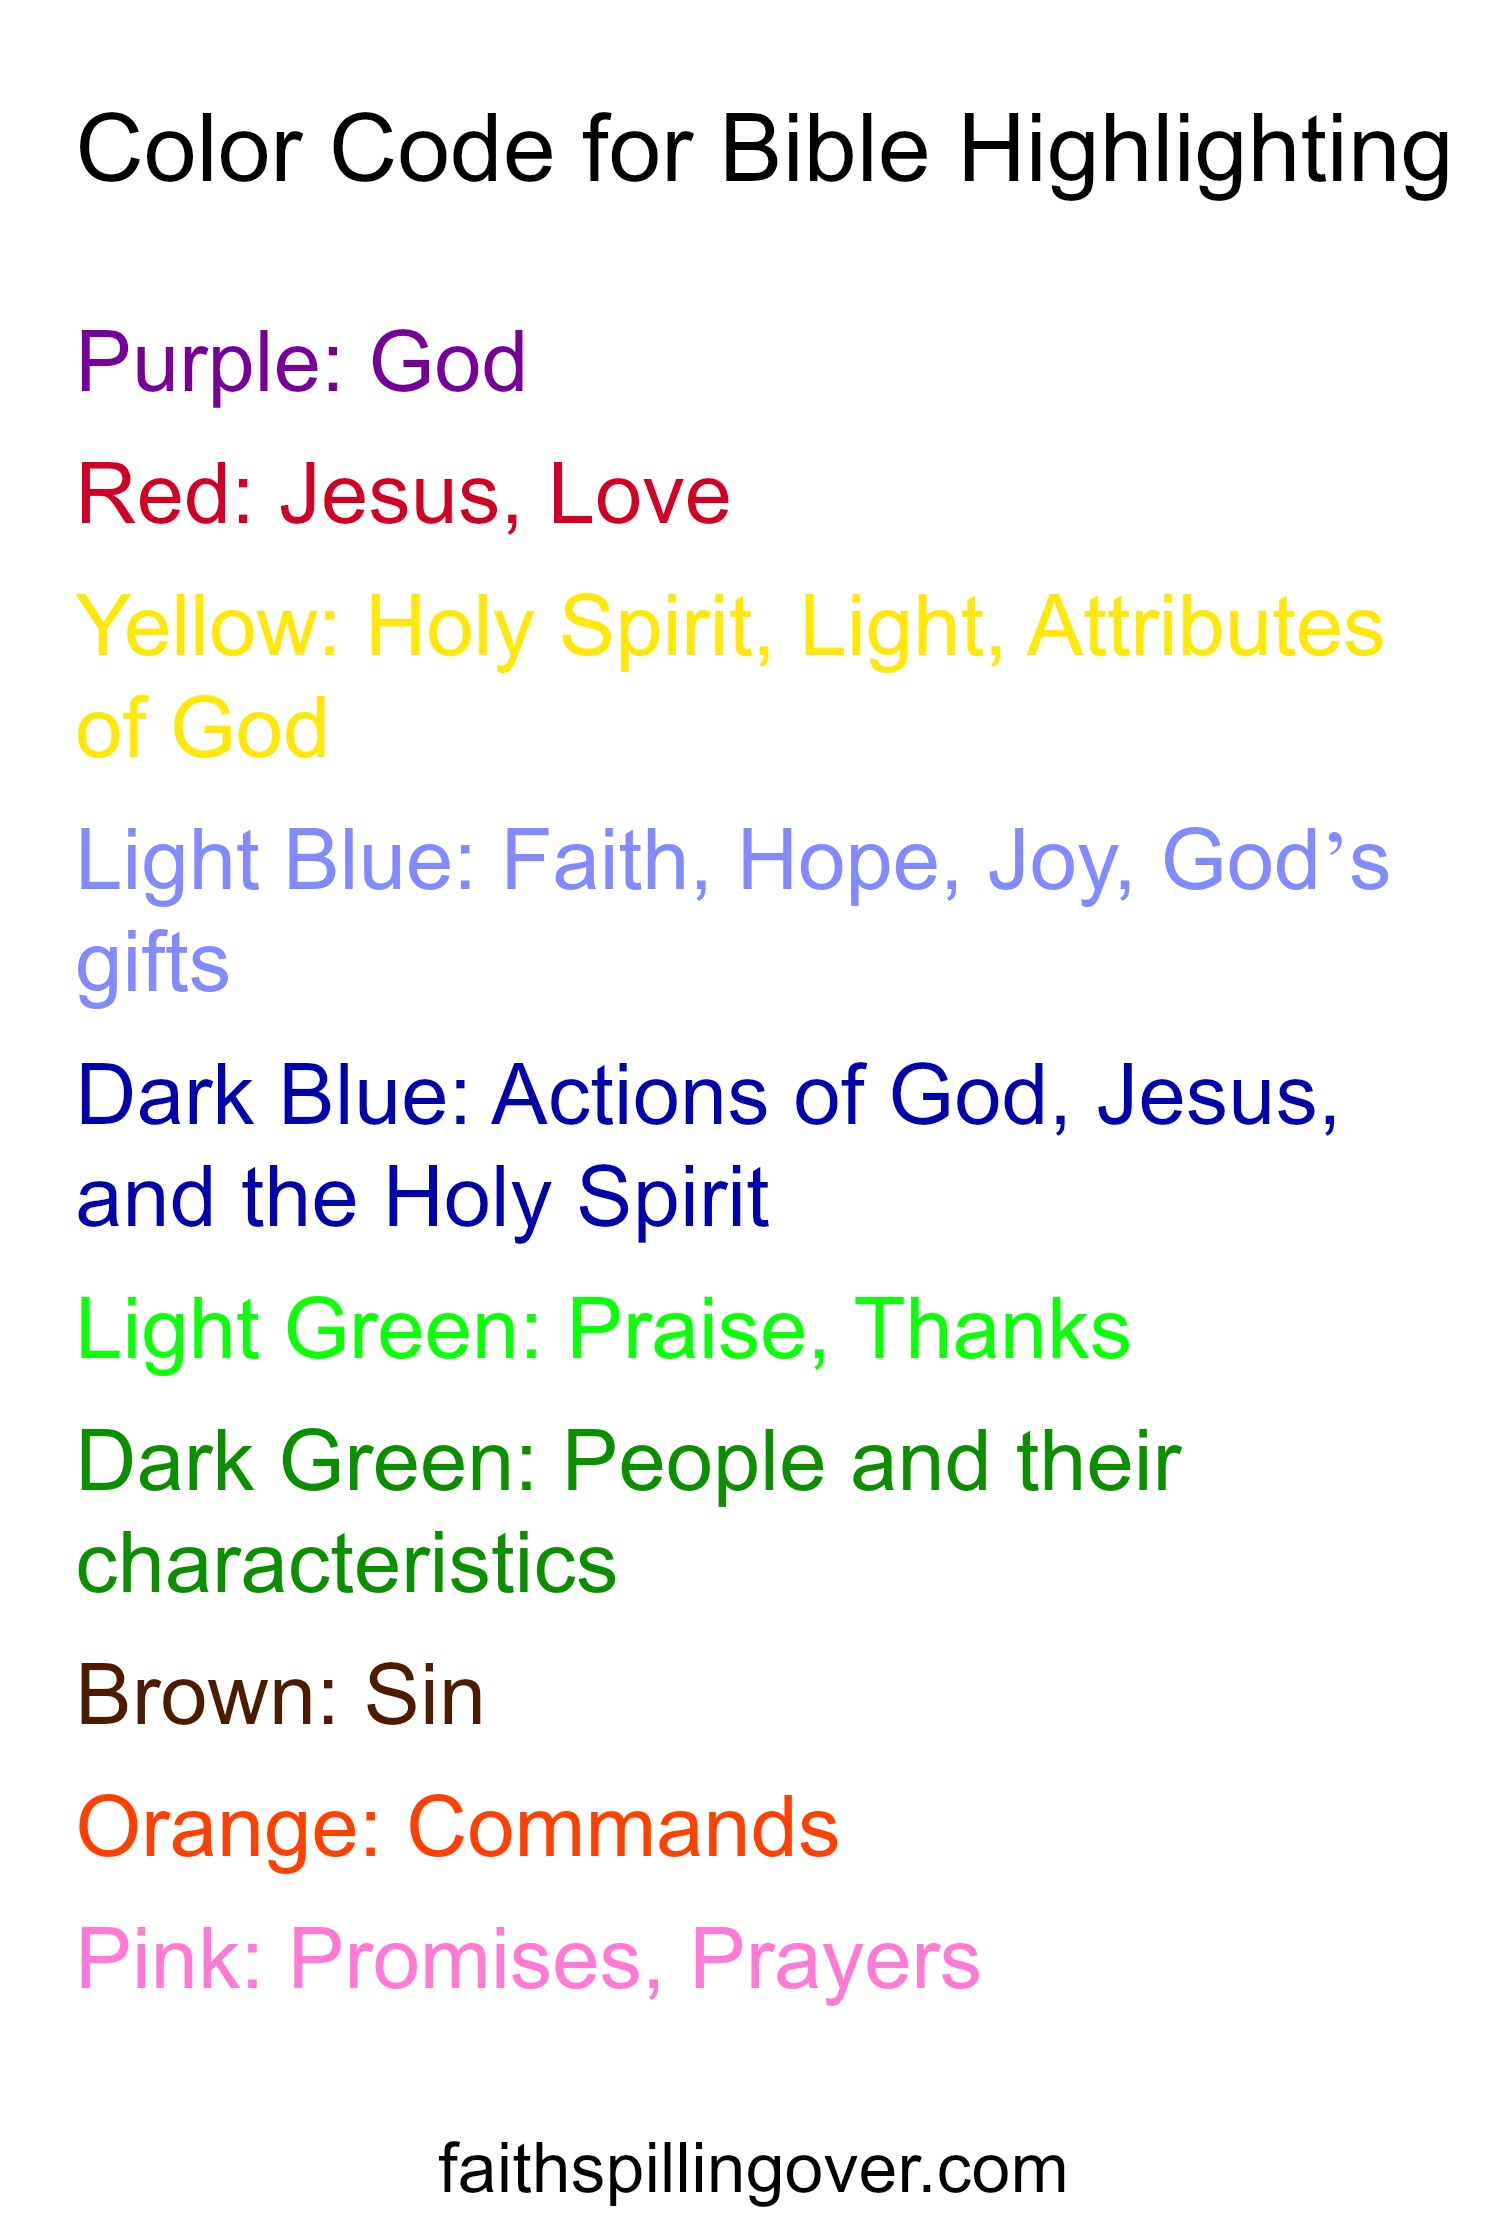 What colors mean in the bible what do the rainbow colors mean in how to wake up to the wonder of the bible faith spilling over rh faithspillingover com what do colors mean in the bible rainbow colors meaning biocorpaavc